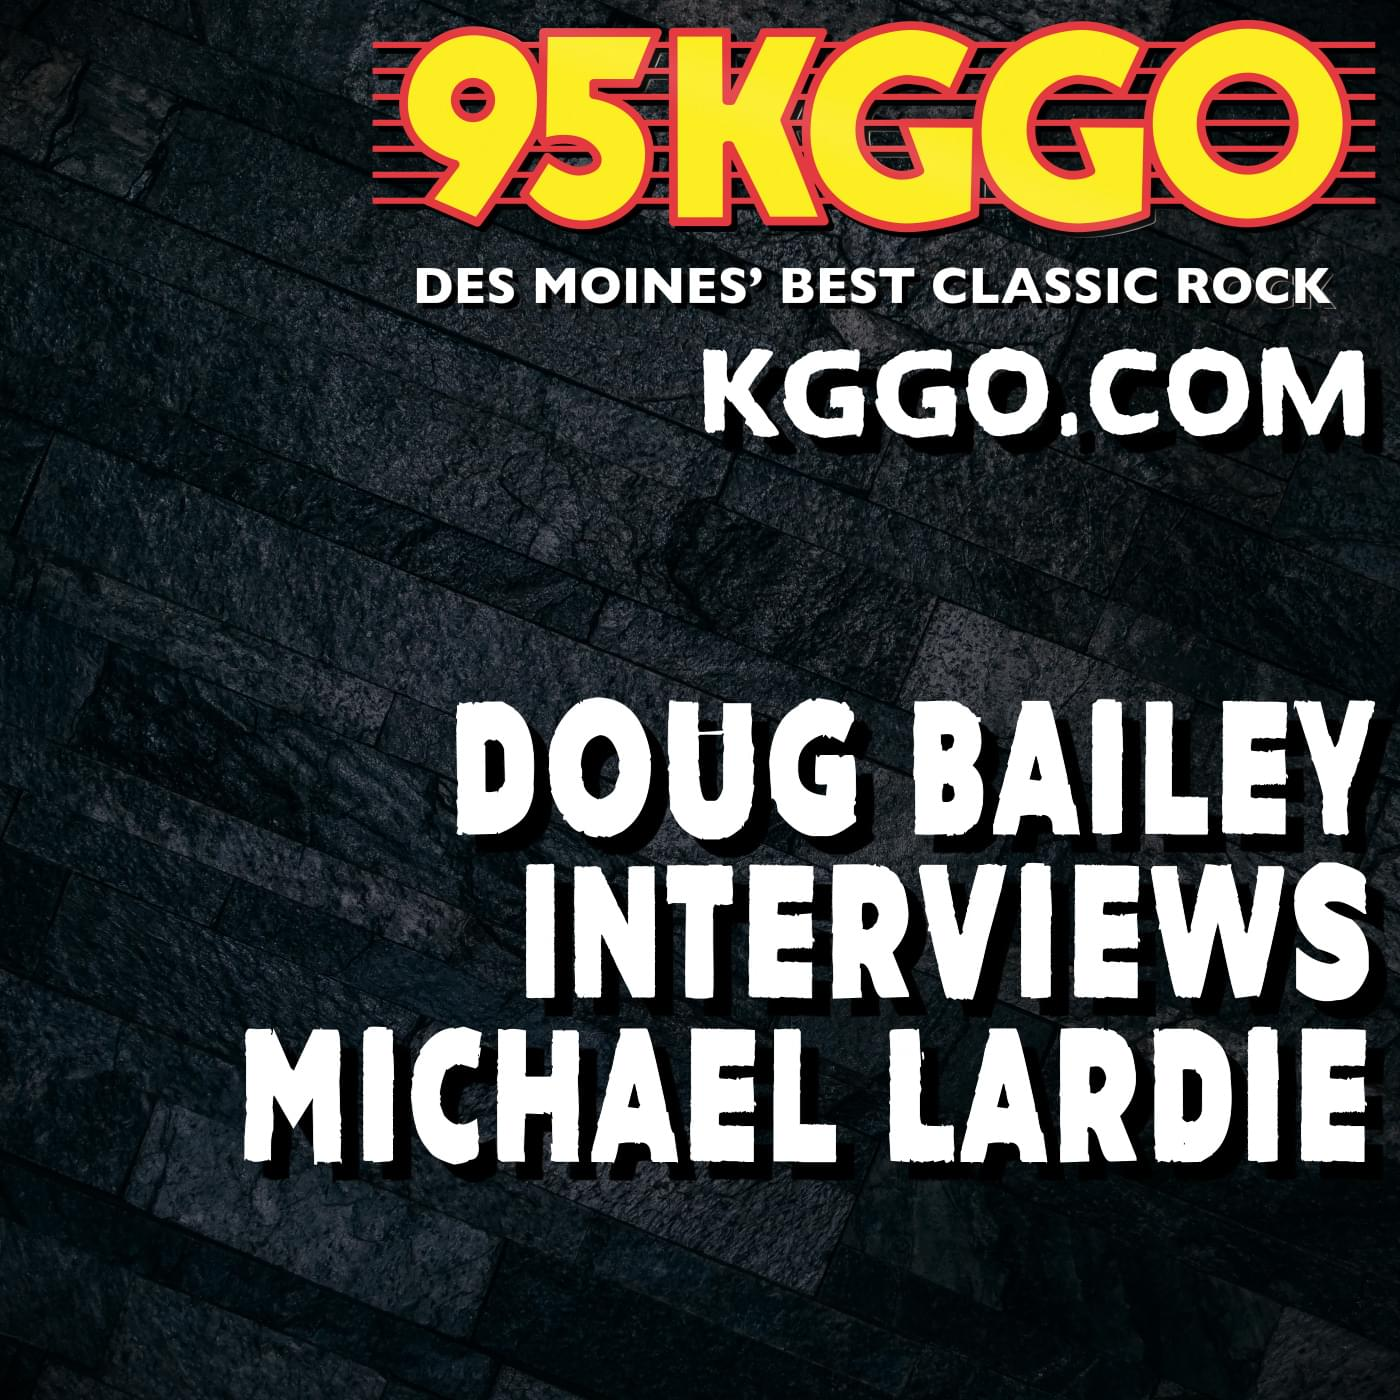 Doug Bailey Interviews Great White guitarist Michael Lardie